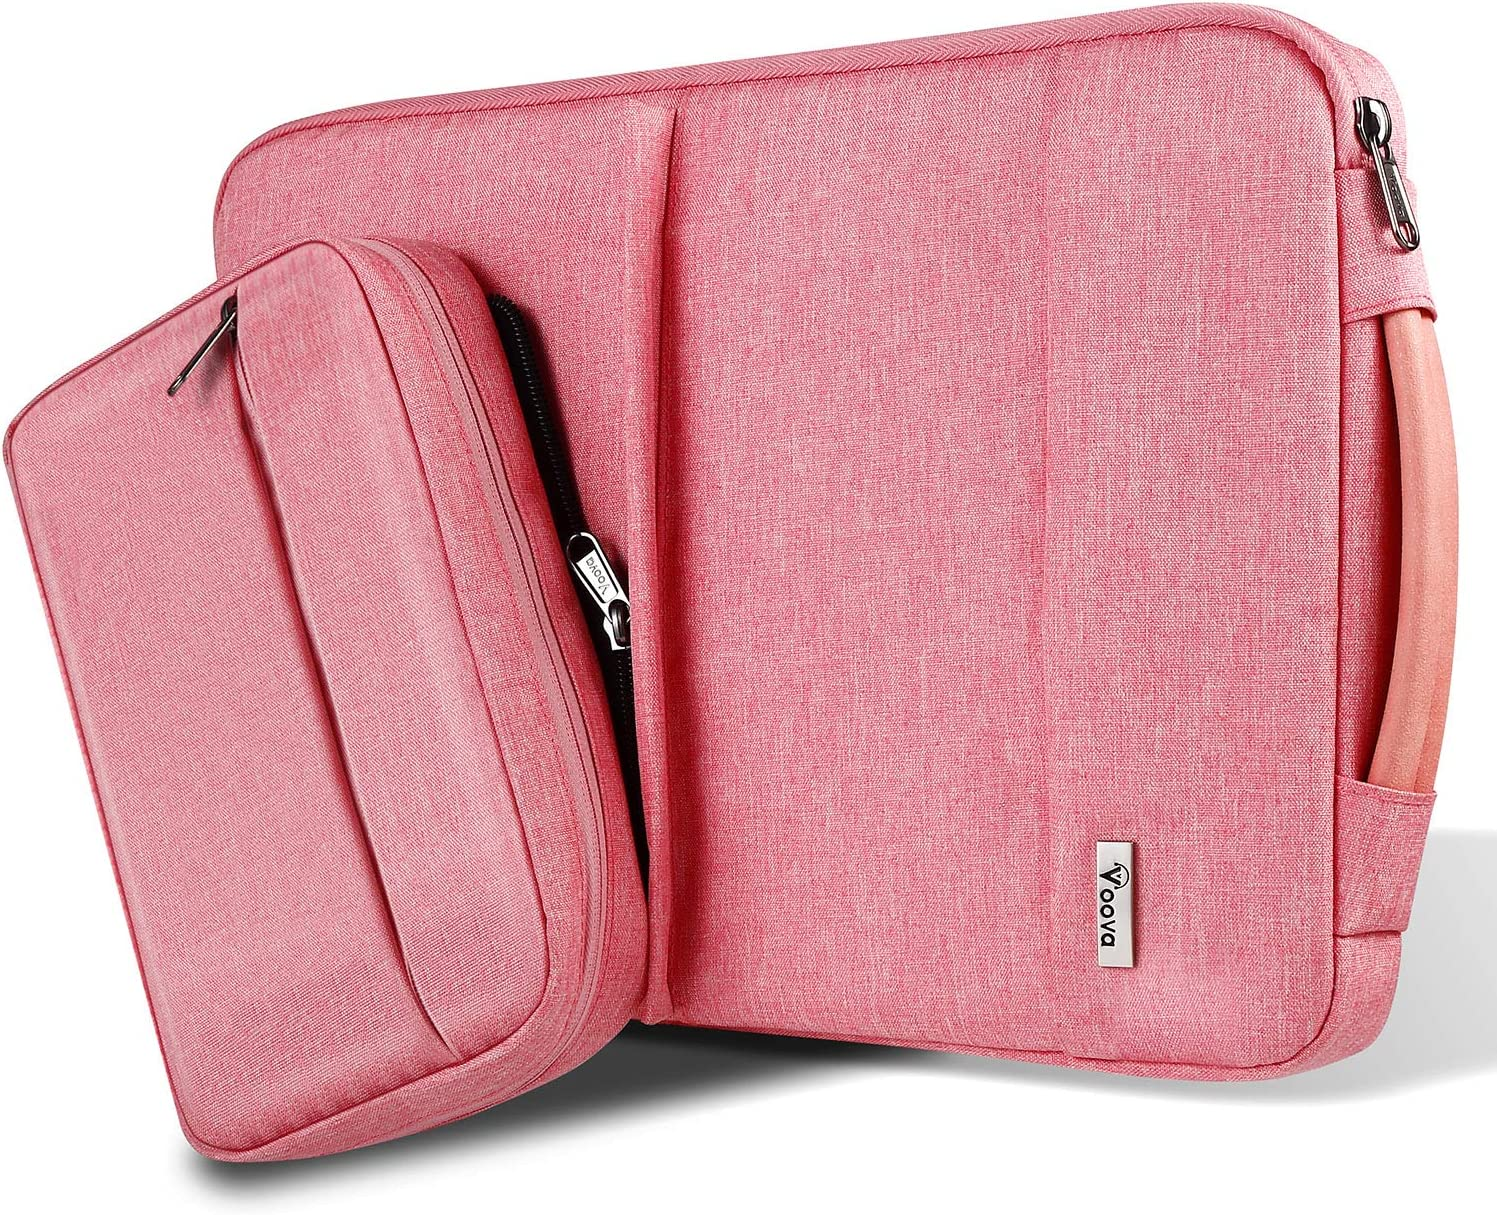 Voova 14-15.6 Inch Laptop Sleeve Carrying Case, Upgrade Smart Computer Bag with Detachable Accessory Pocket Compatible with MacBook Pro 15 16, Surface Book 2/Laptop 3 15 Chromebook for Women, Pink